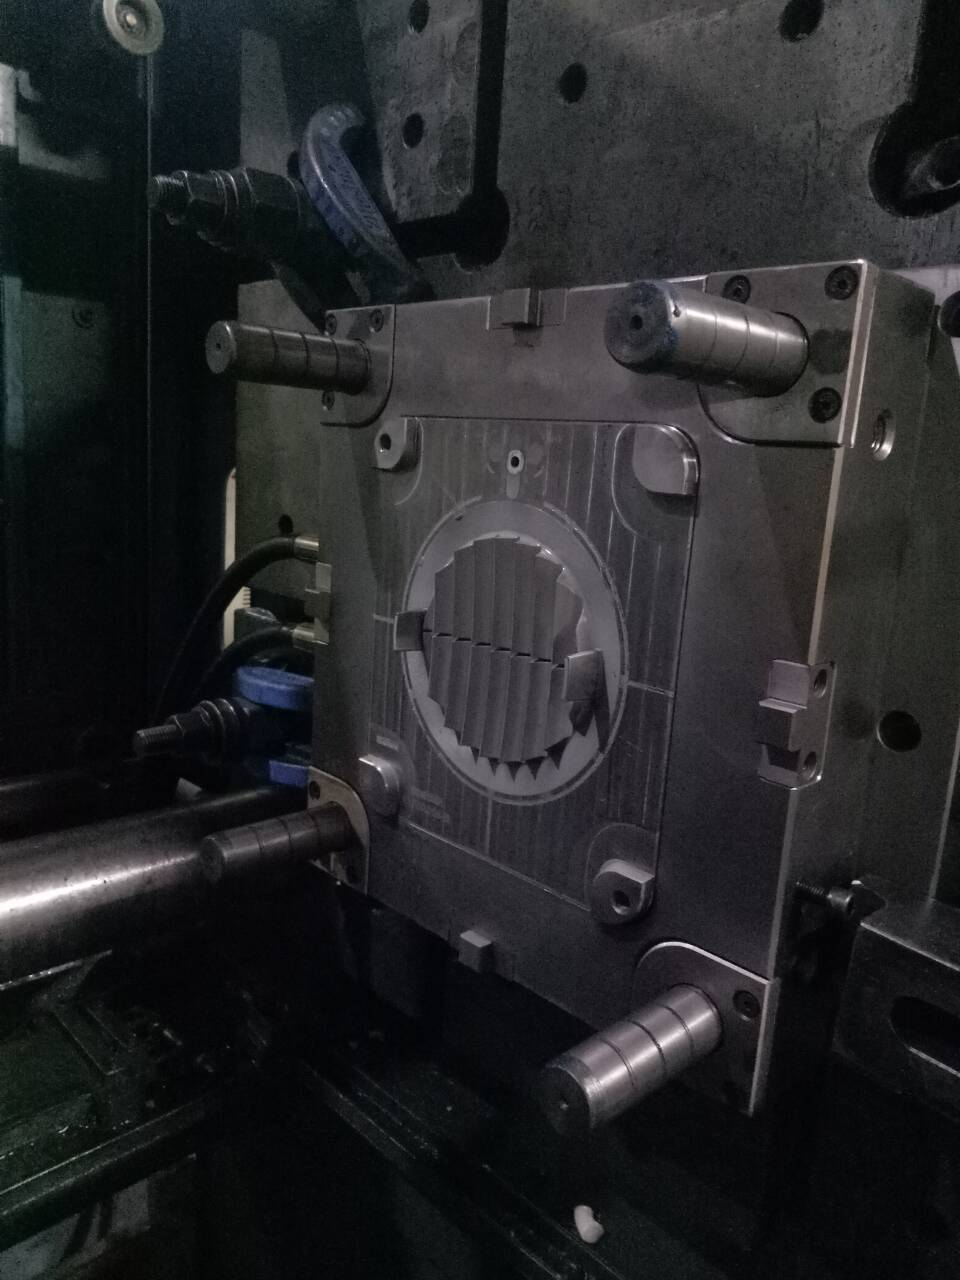 Relationship between injection moulding machine and mold